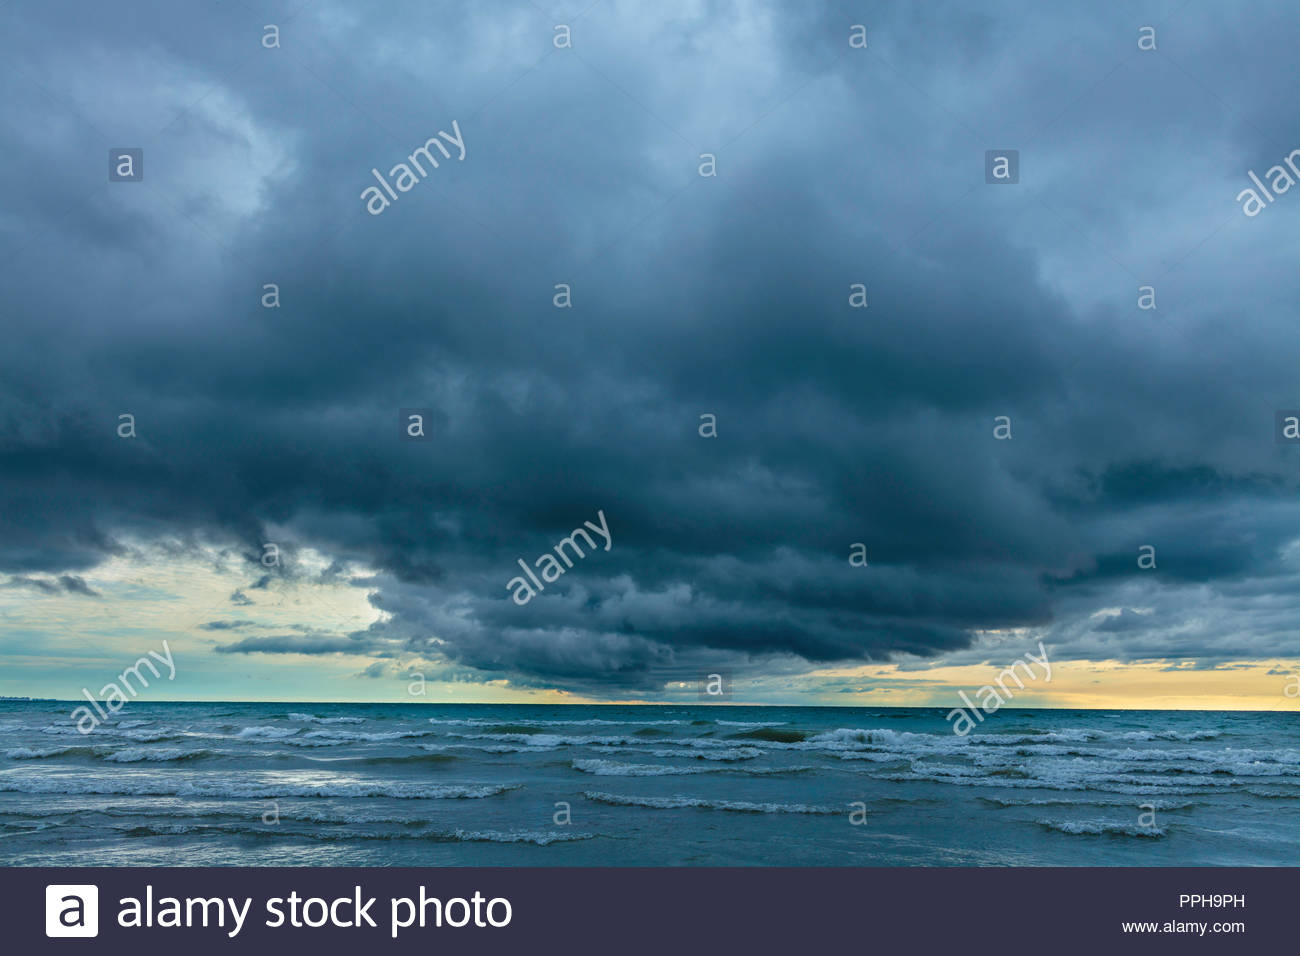 gathering-storm-clouds-severe-weather-th